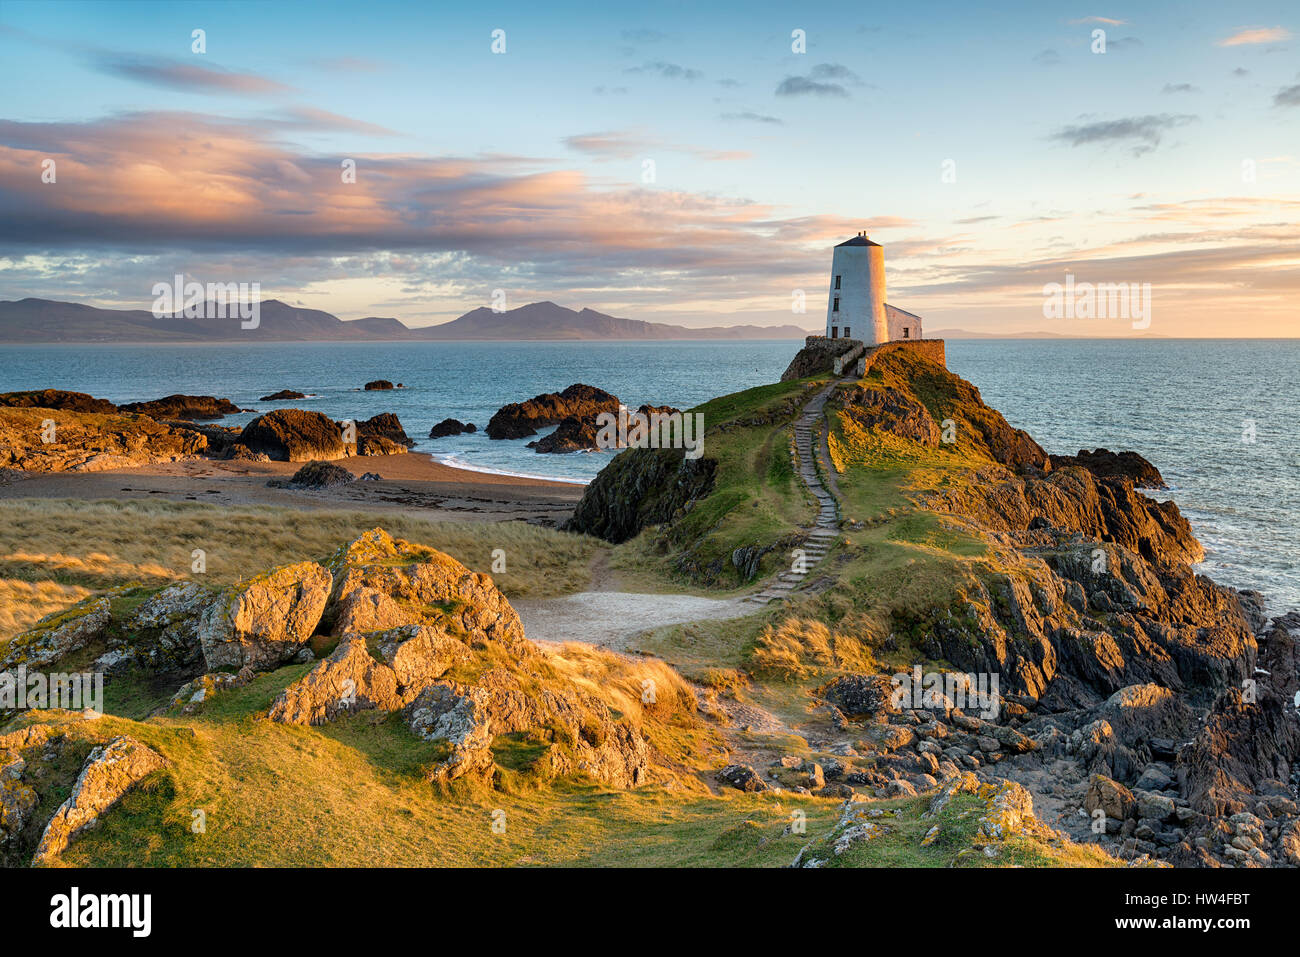 Sunset at Ynys Llanddwyn island on the coast of Anglesey in North Wales with the mountains of Snowdonia in the distance. - Stock Image